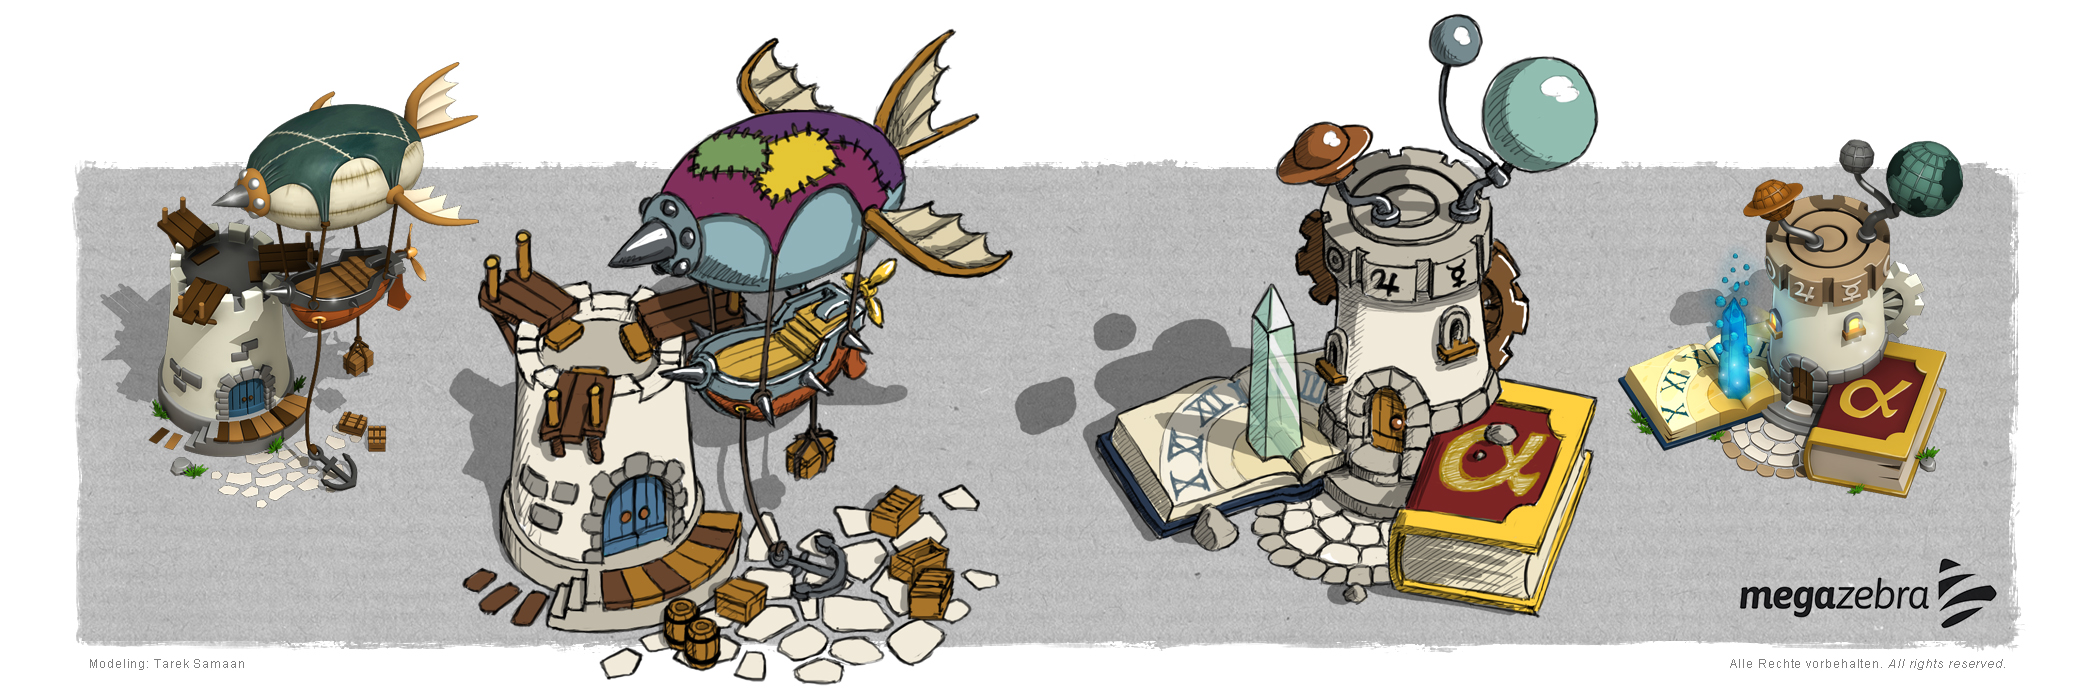 Concept Art for a social browser game